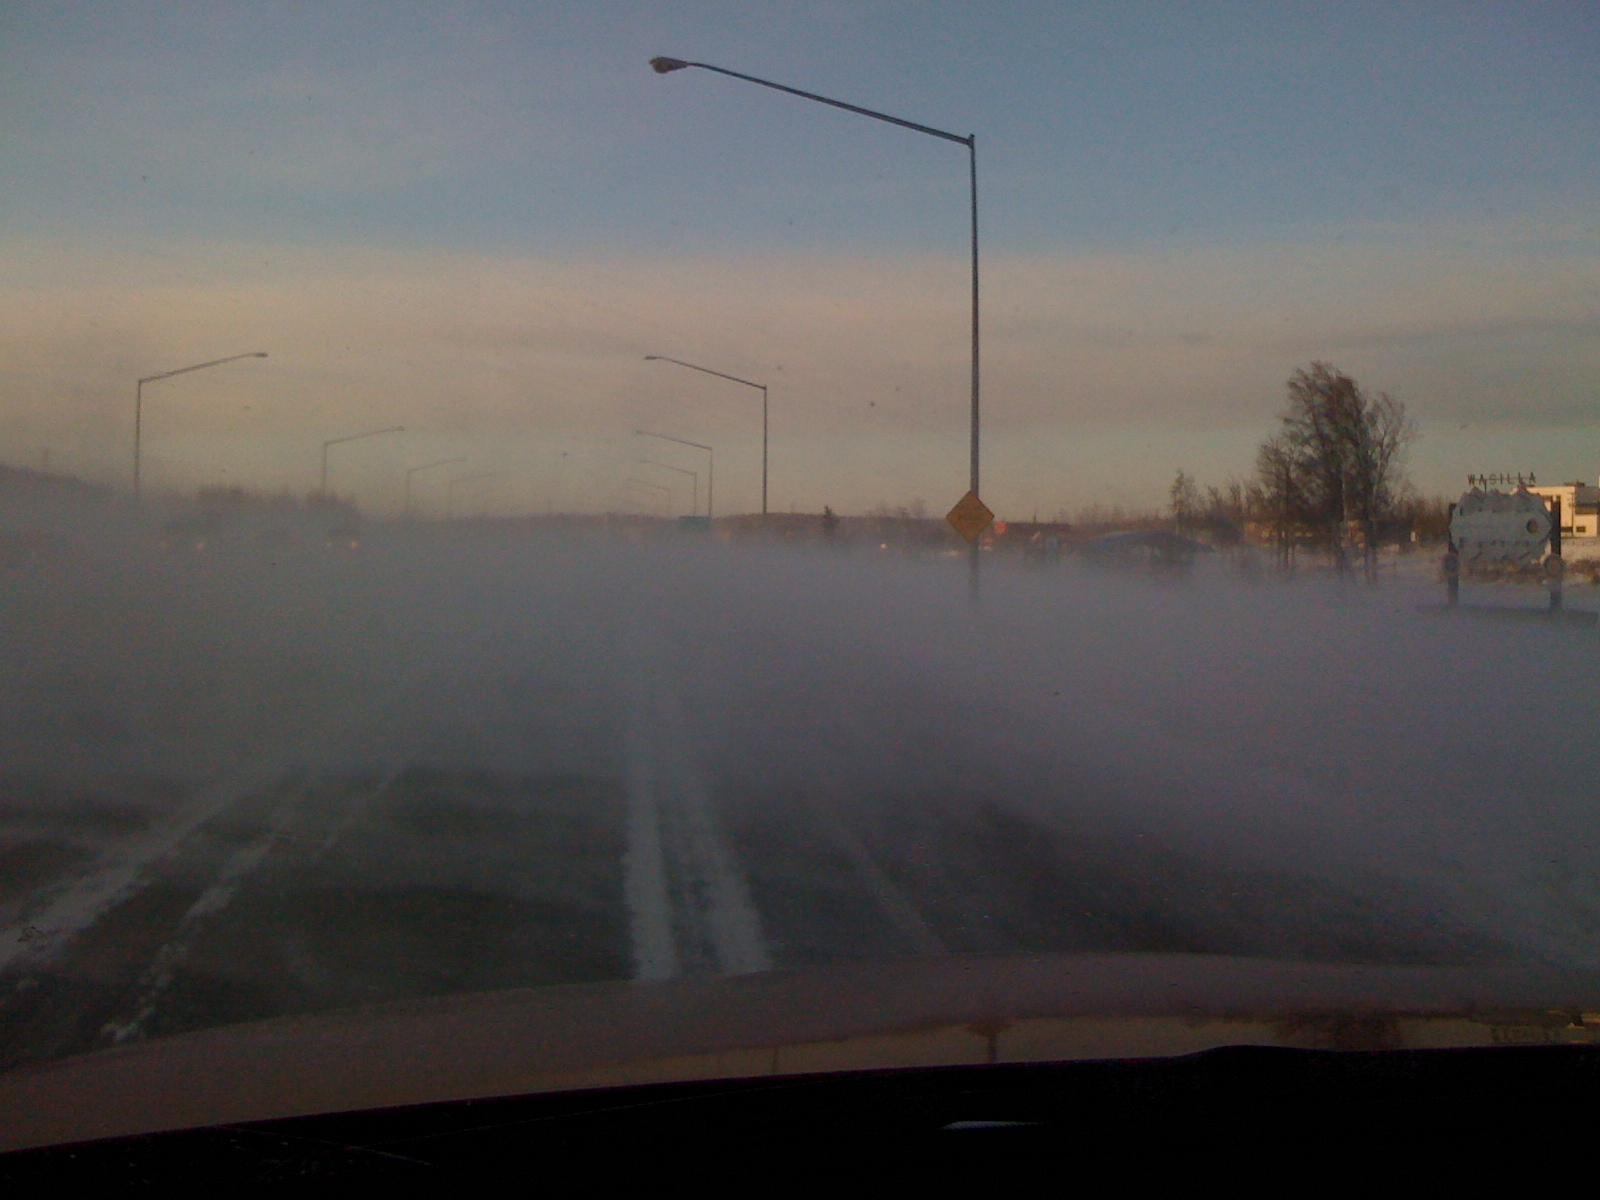 Wasilla, Alaska weather - December 15, 2010 - Can't see road (high winds).